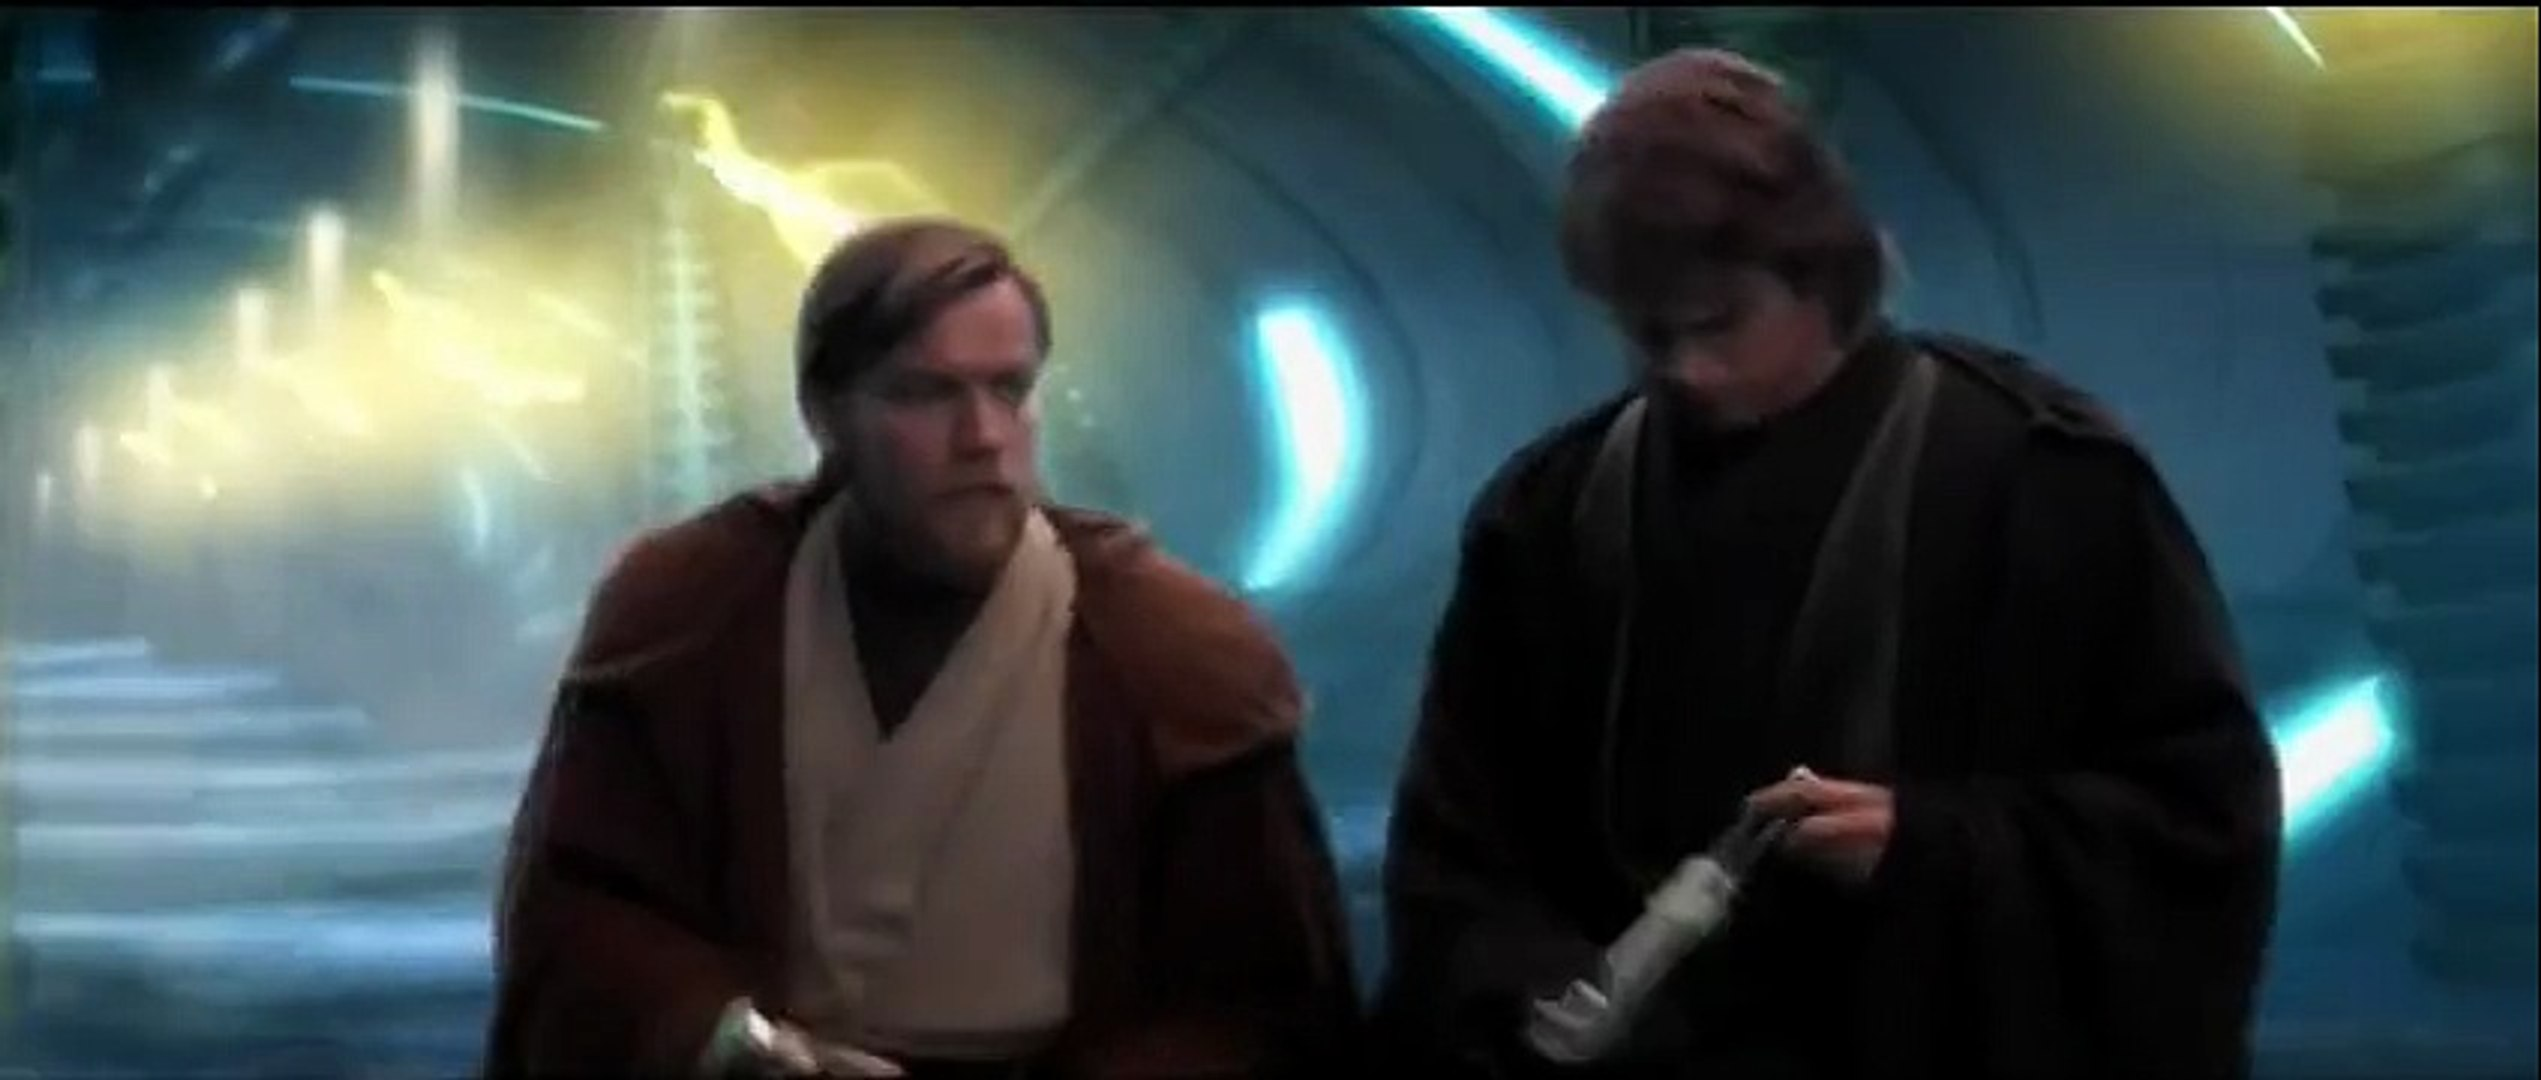 Star Wars Episode Iii Revenge Of The Sith Deleted Scenes Video Dailymotion